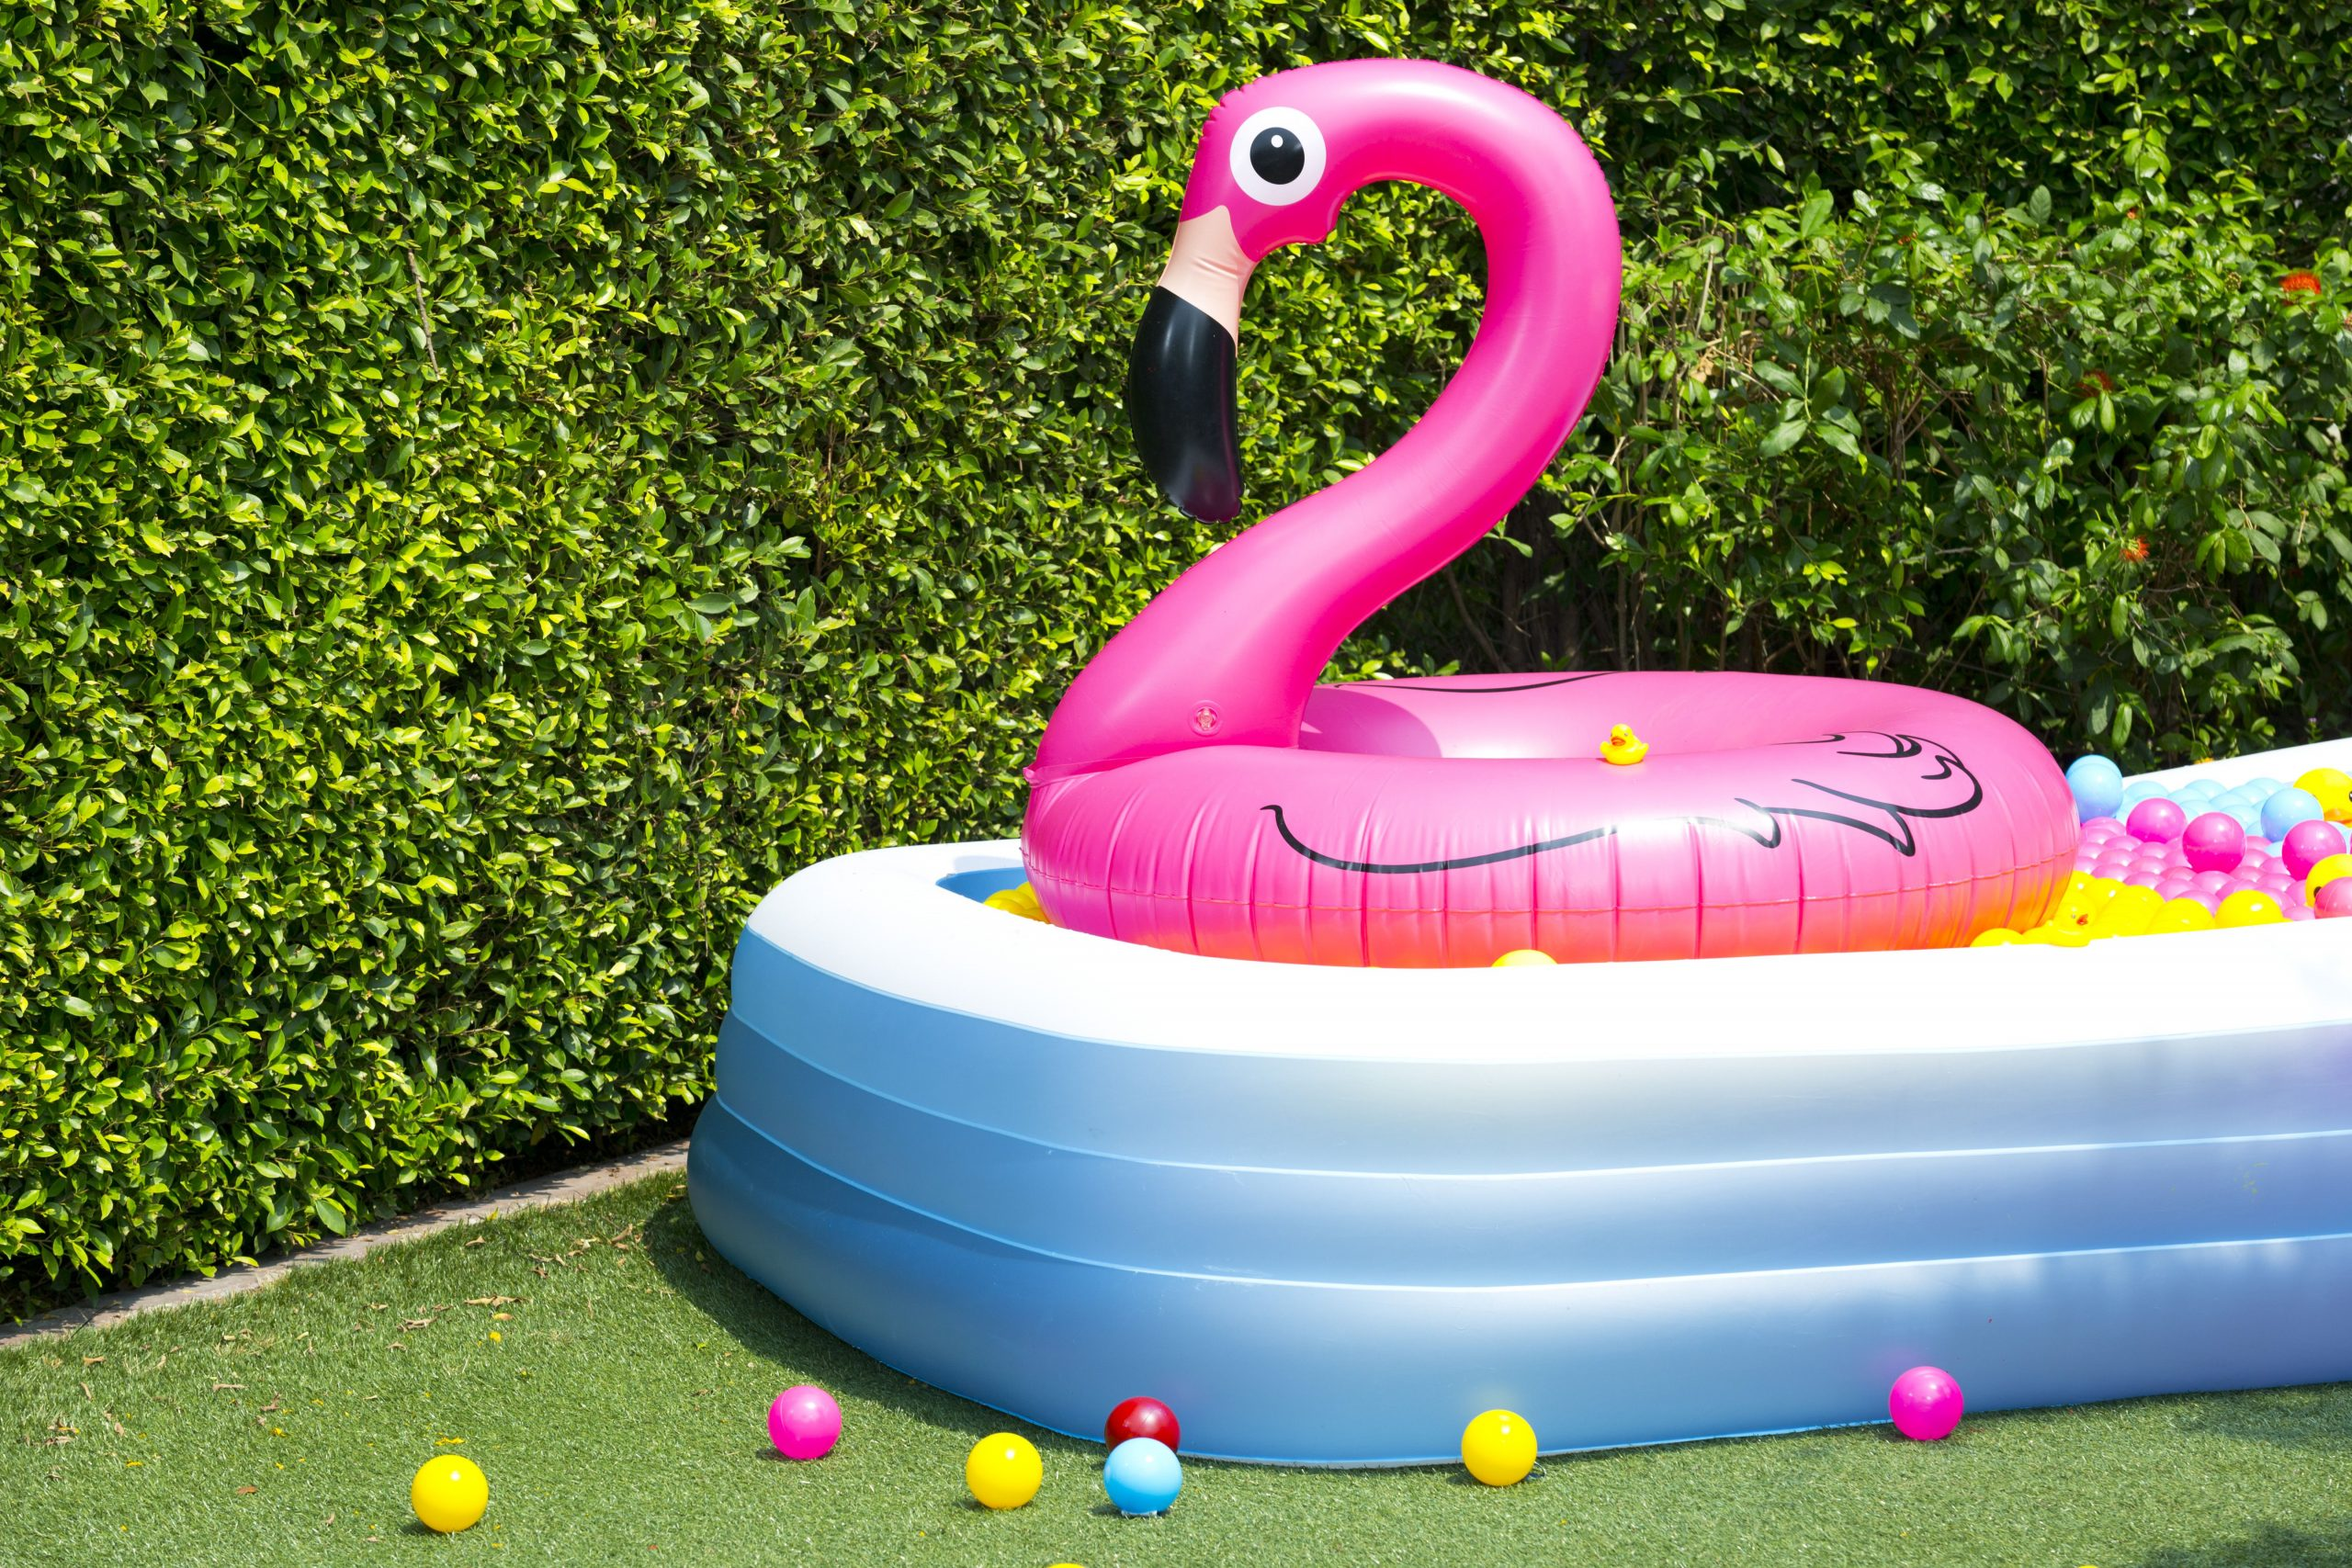 Park Art|My WordPress Blog_How To Keep Inflatable Pool Water Clean With Bleach